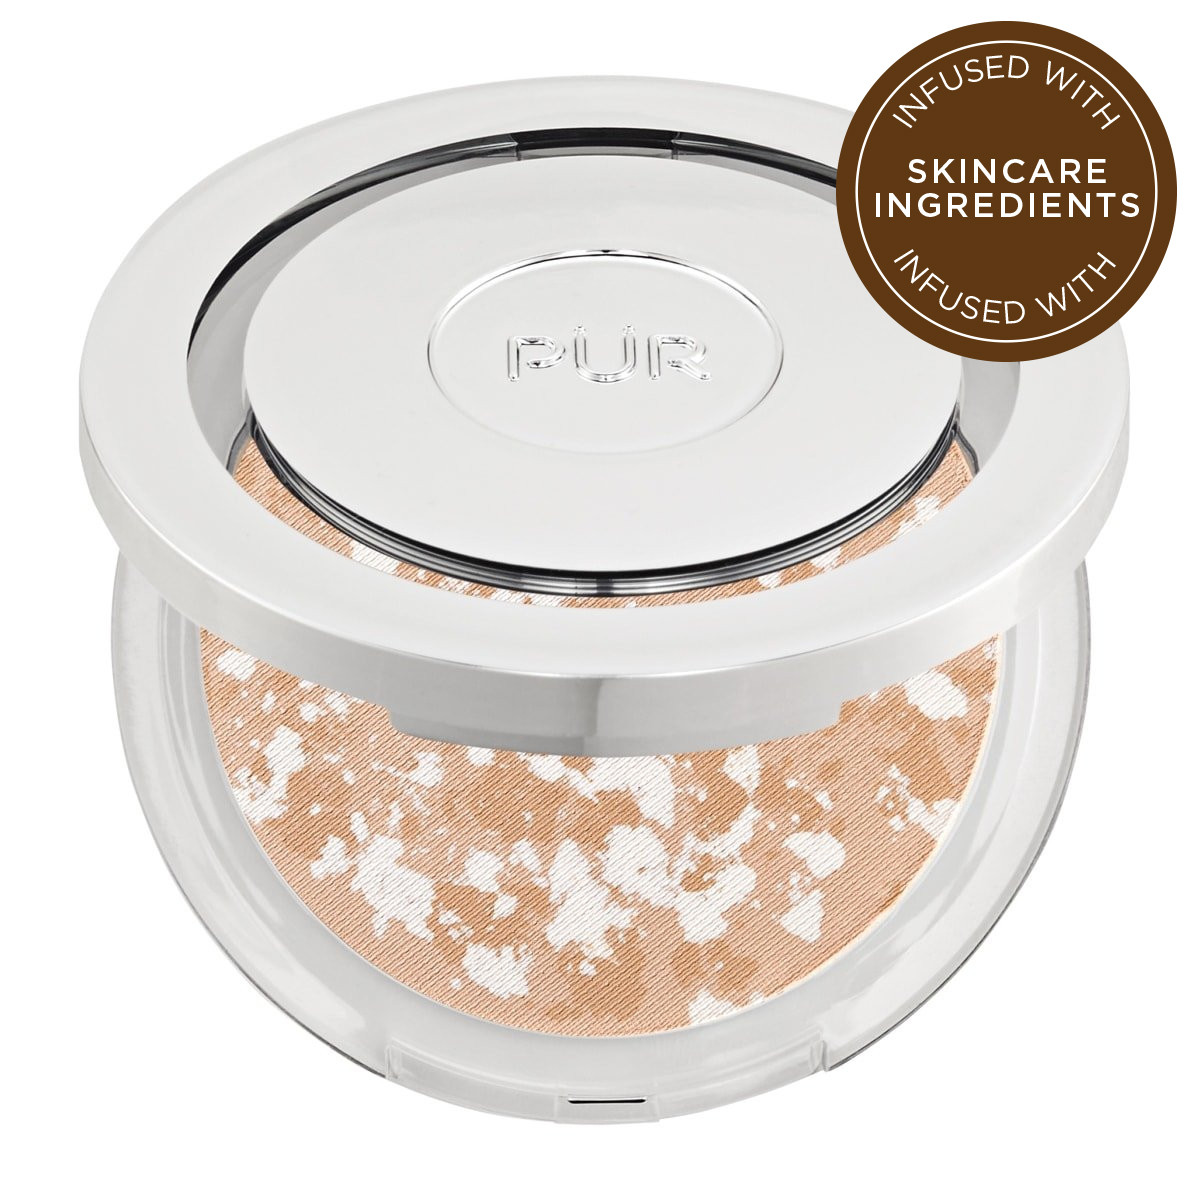 Balancing Act Mattifying Skin Perfecting Powder